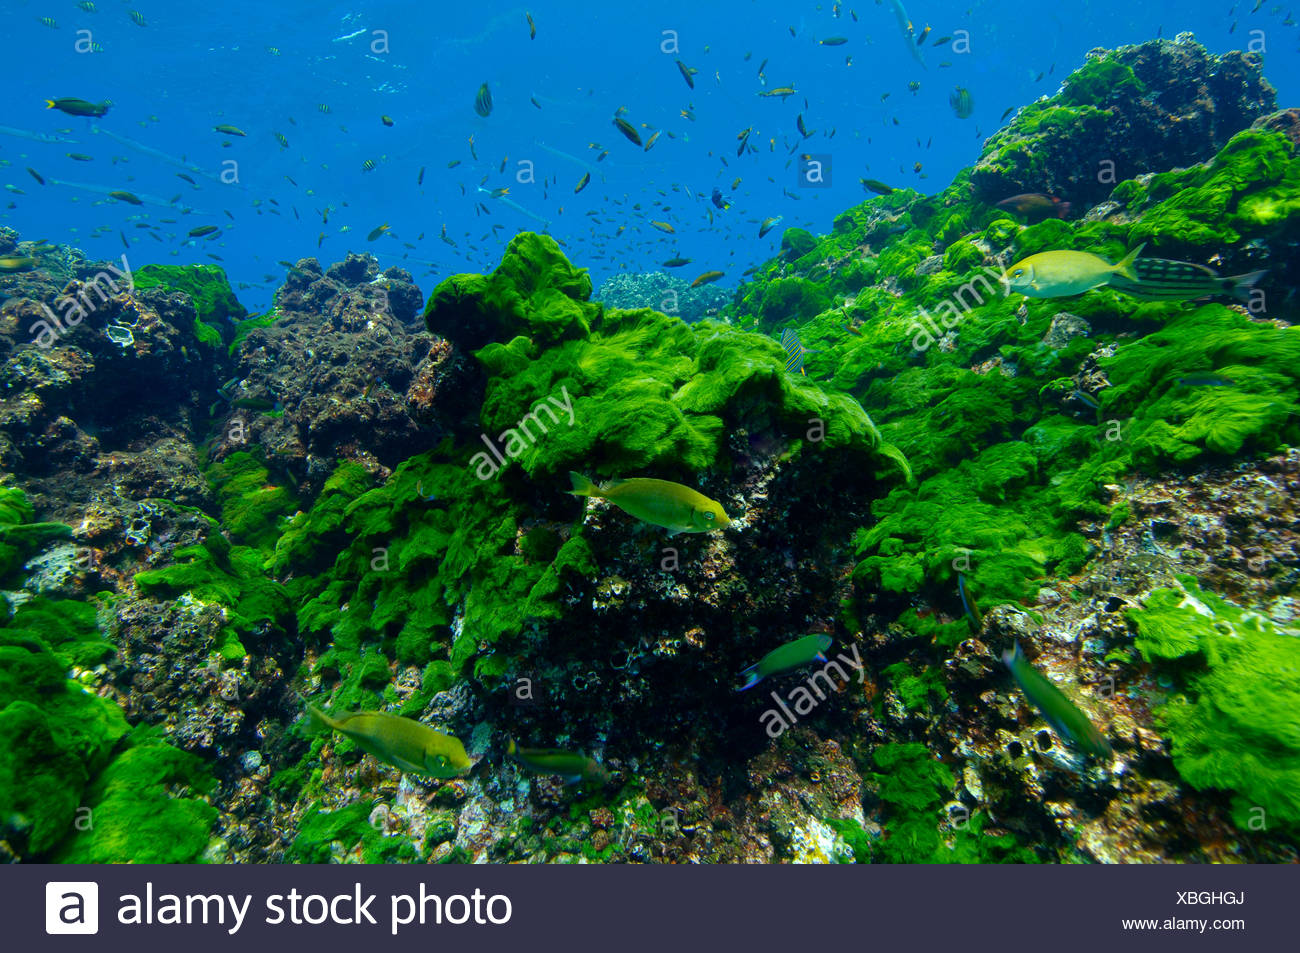 Reef of Green Alge Andaman Sea Myanmar Burma - Stock Image